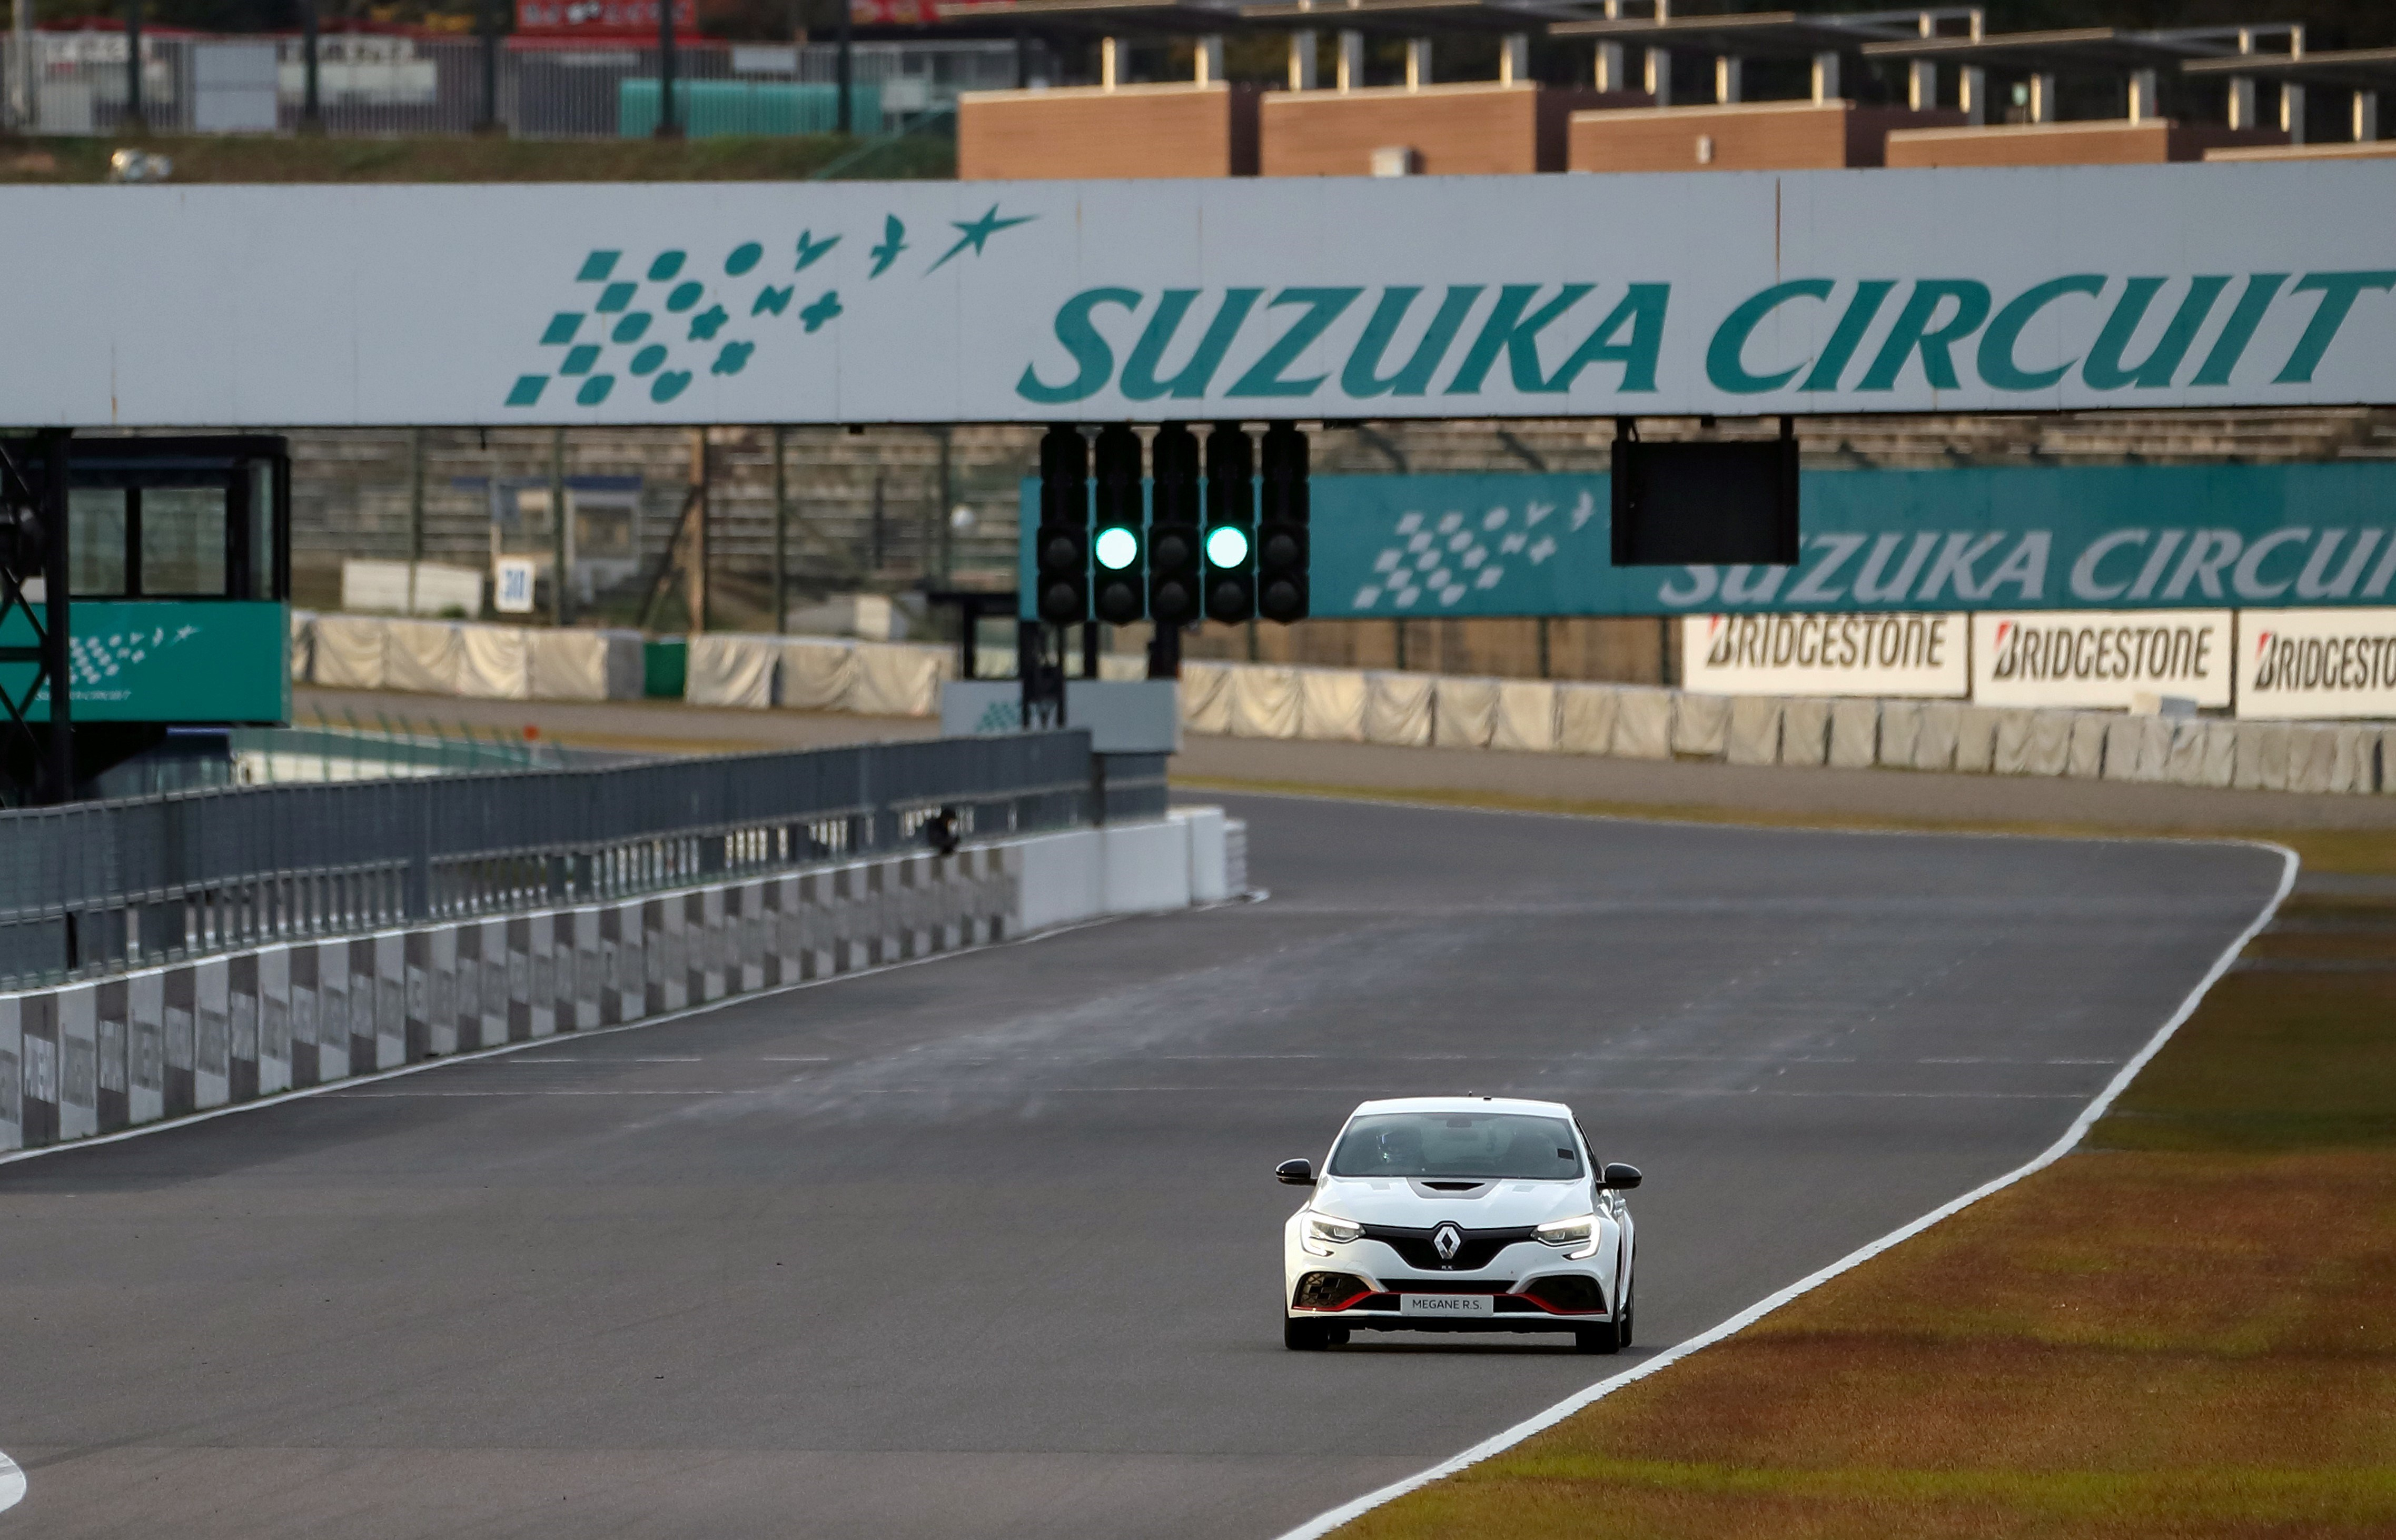 21236939_2019_-_The_new_MEGANE_R_S_TROPHY-R_New_record_on_the_Suzuka_circuit